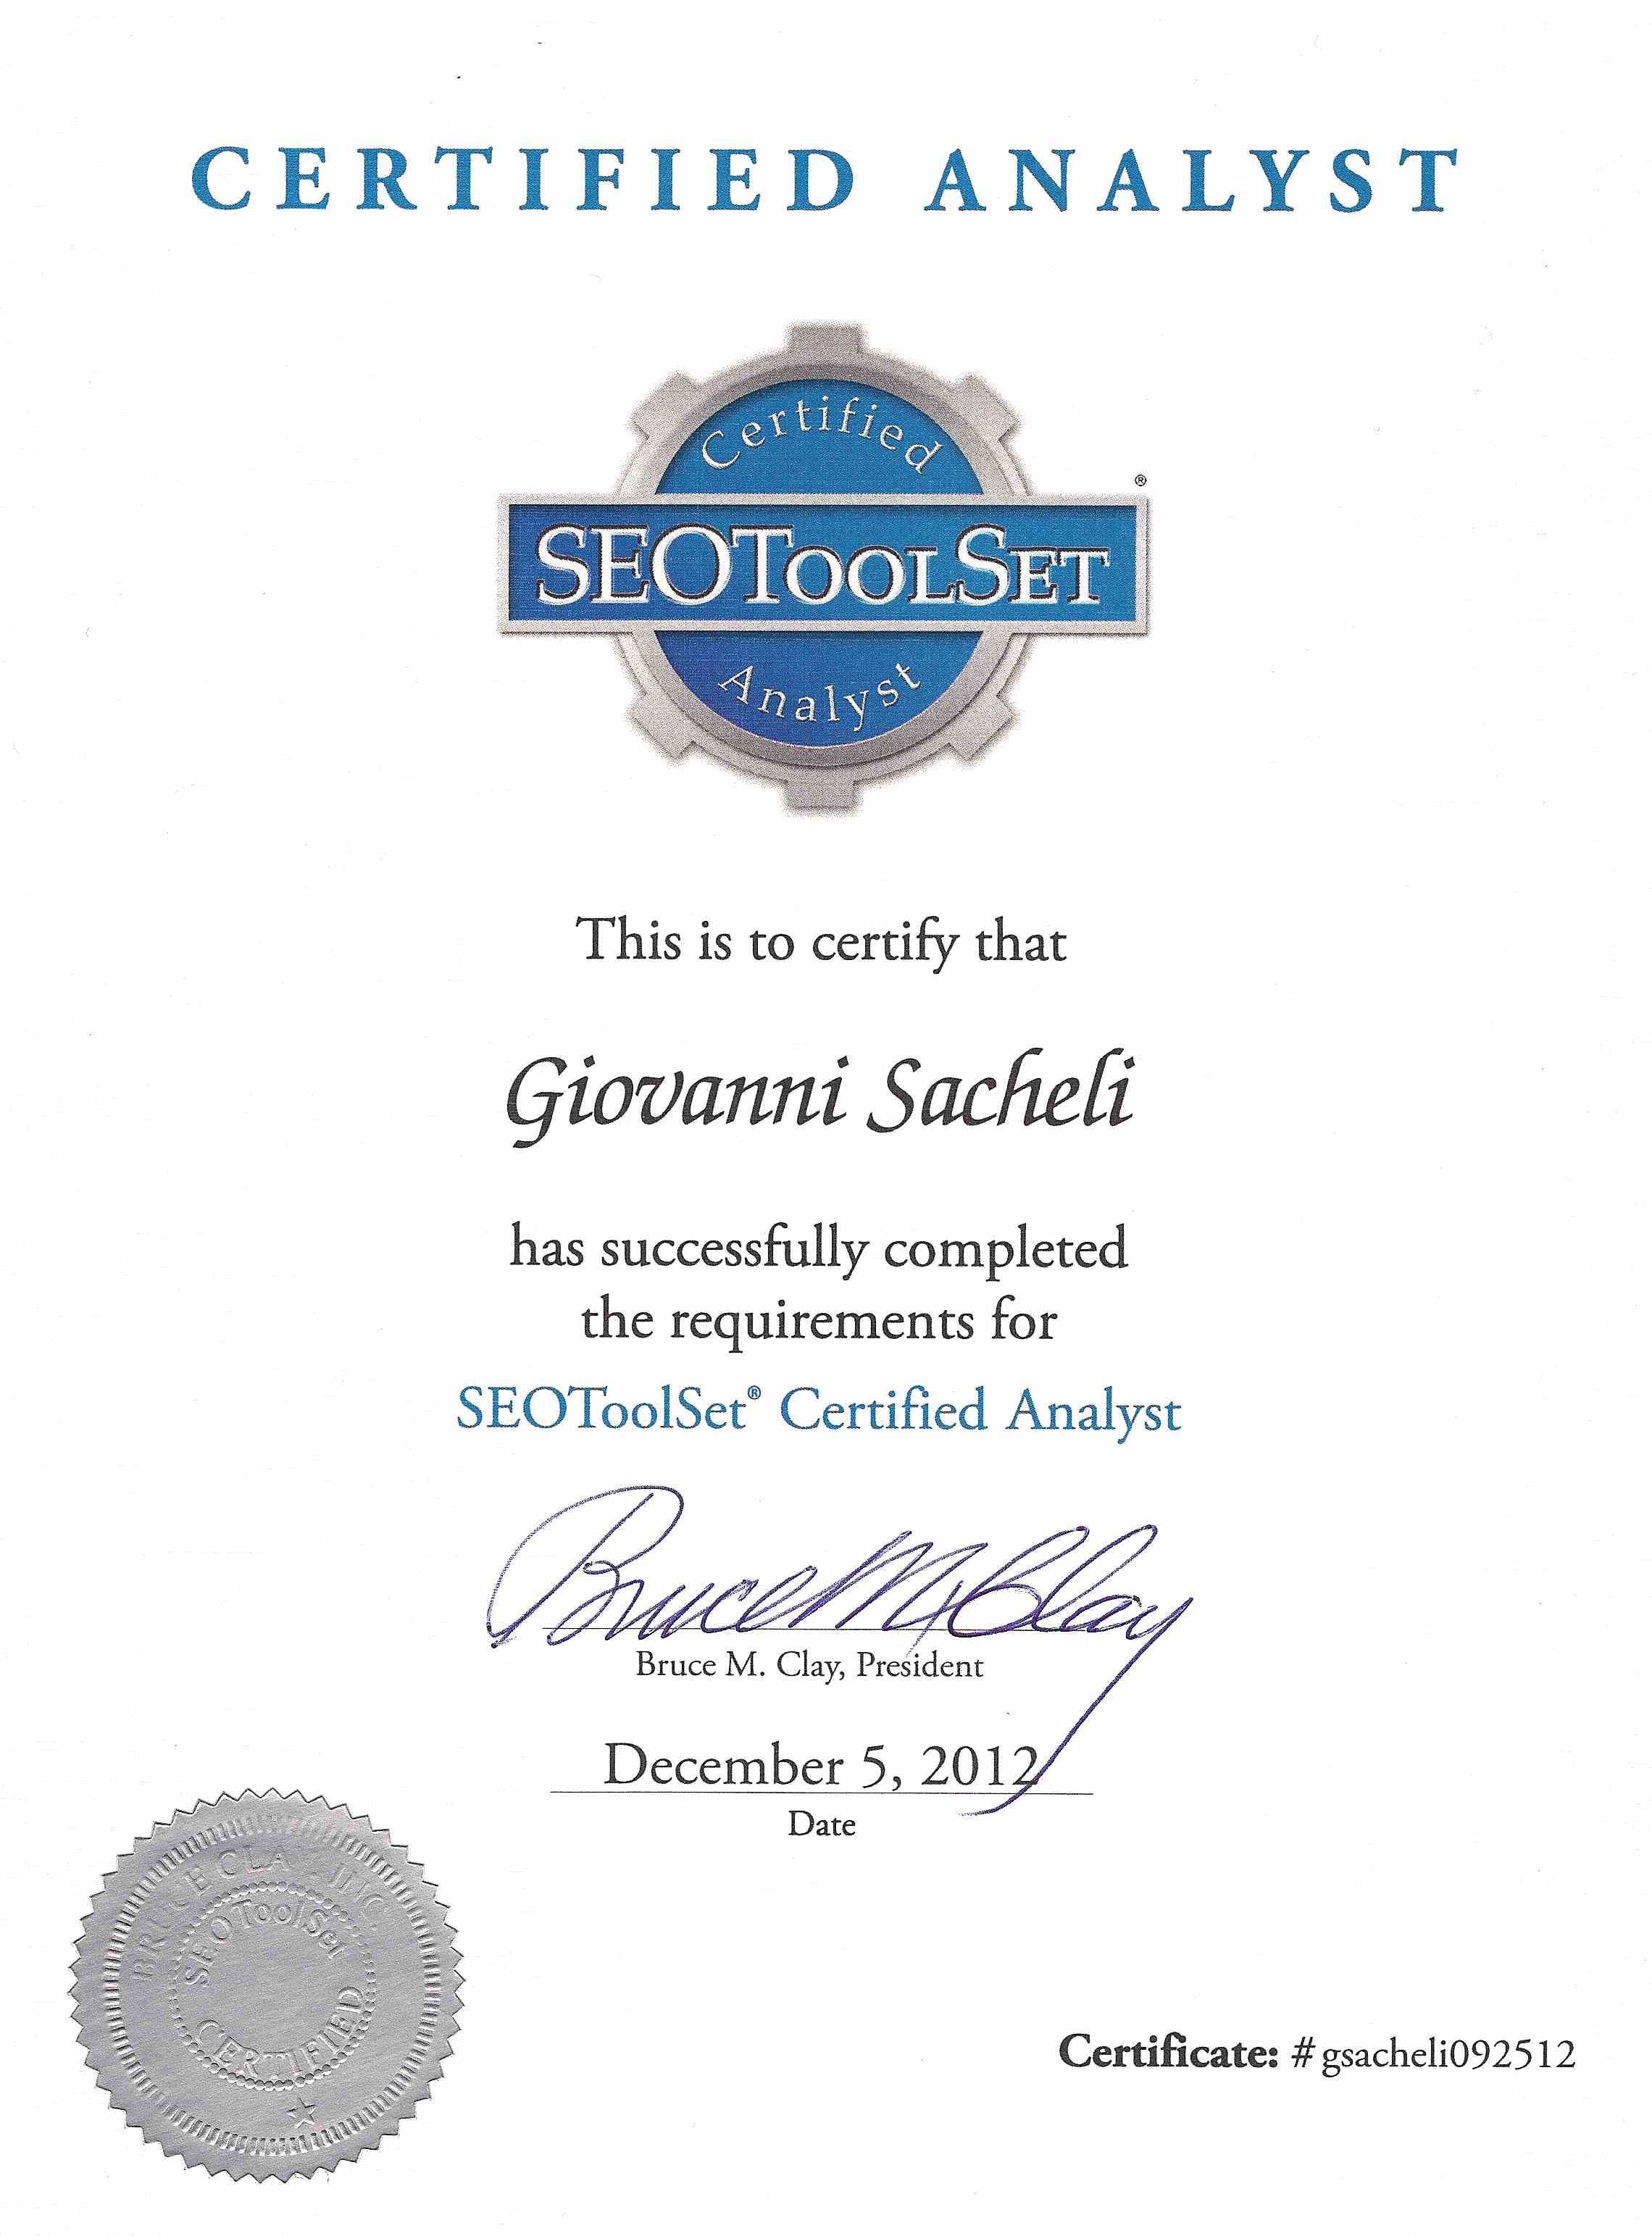 Bruce Clay SEOToolSet Certification